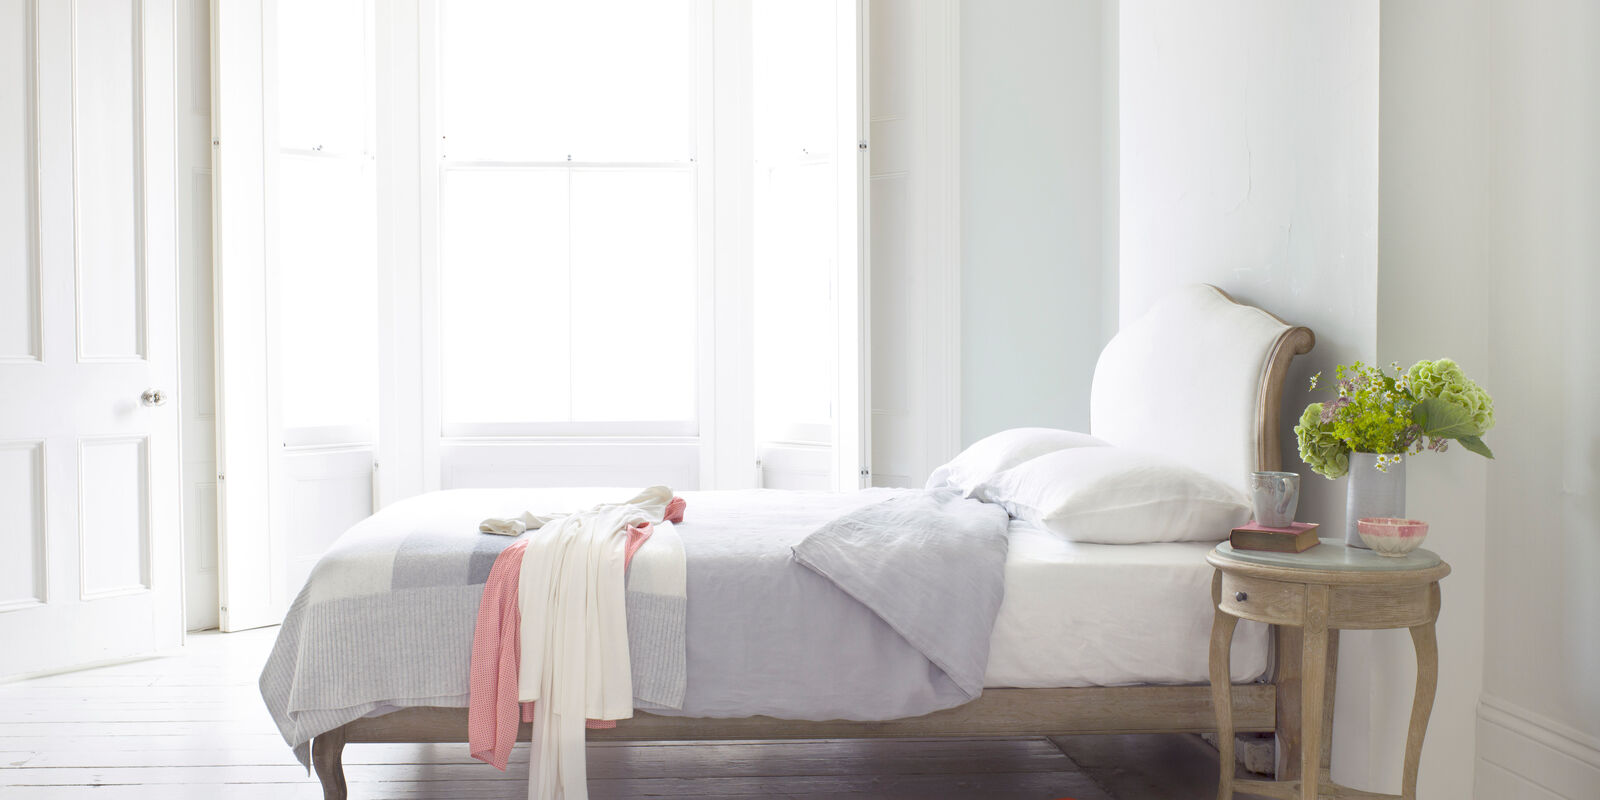 Coco - kingsize French bed handmade from weathered oak